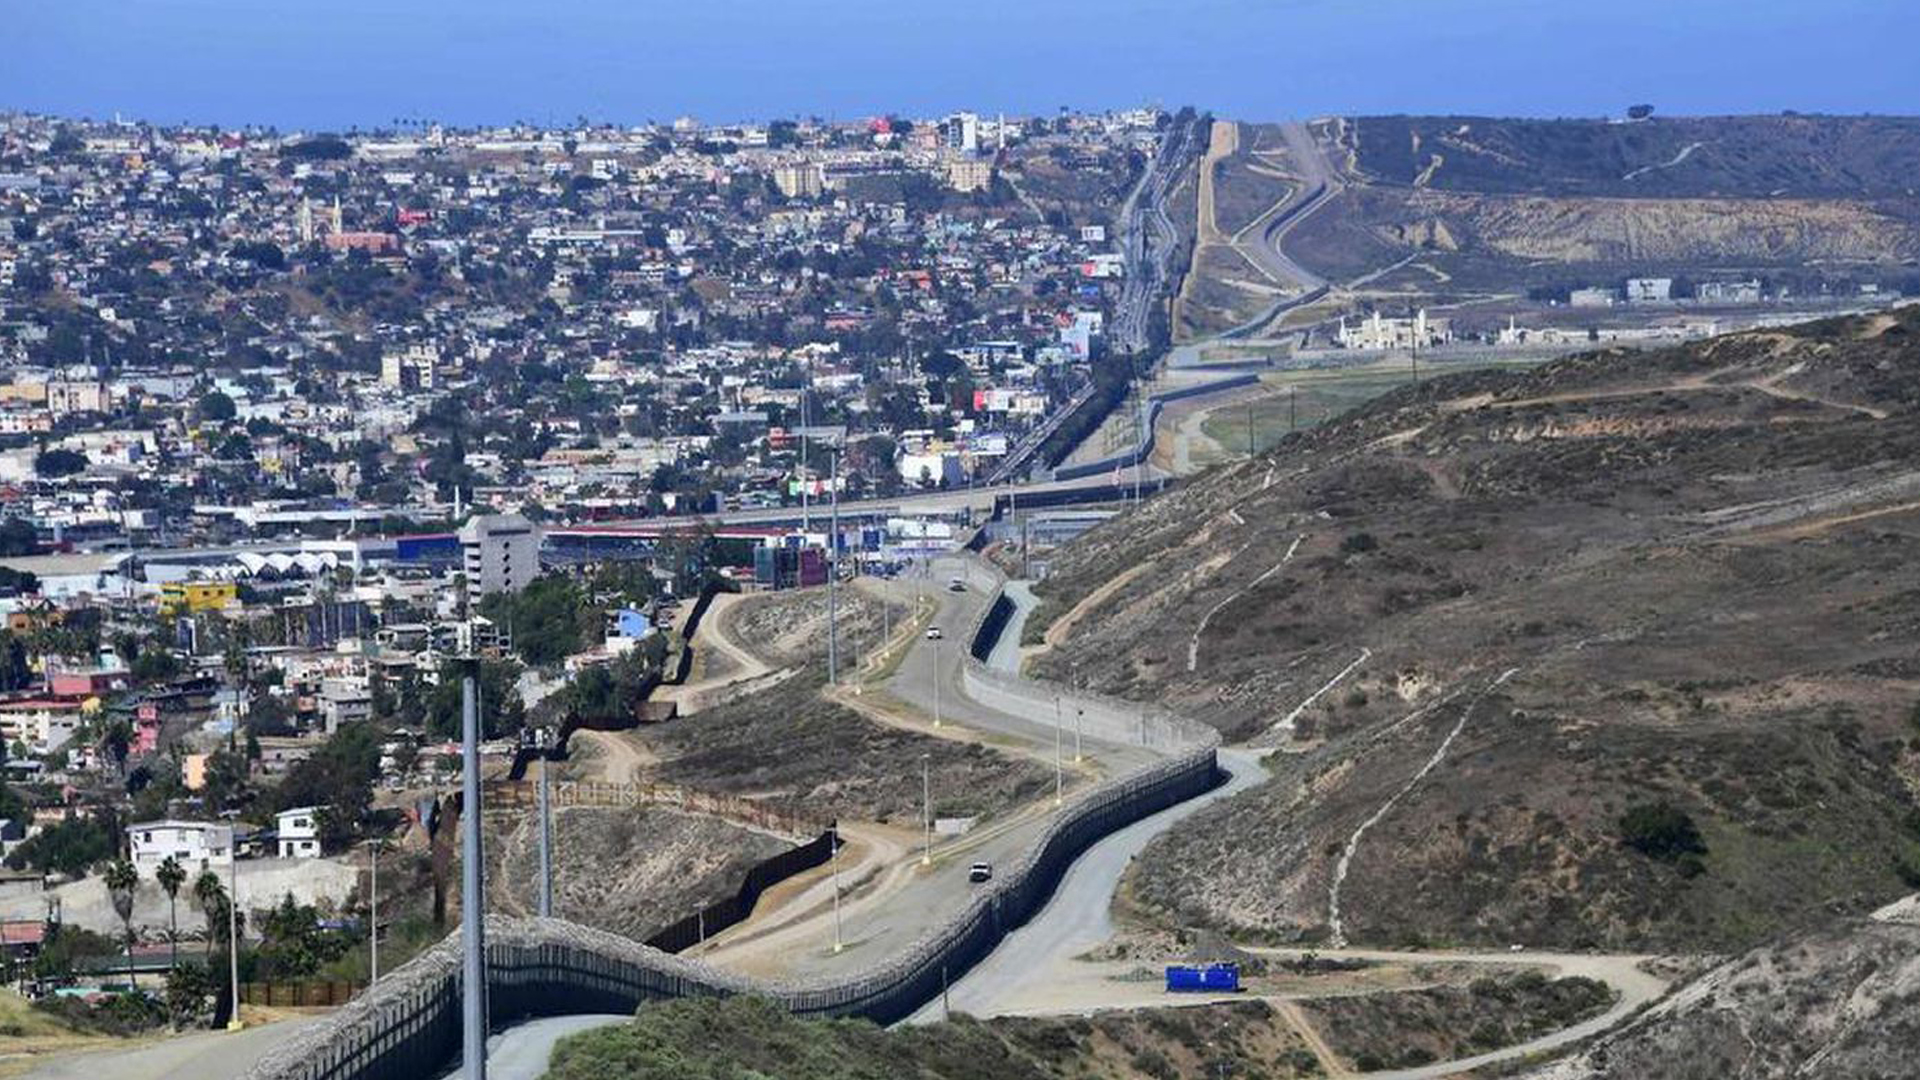 A portion of the U.S.-Mexico border near San Diego is seen in an undated photo. (Credit: Frederic J. Brown / AFP/Getty Images)